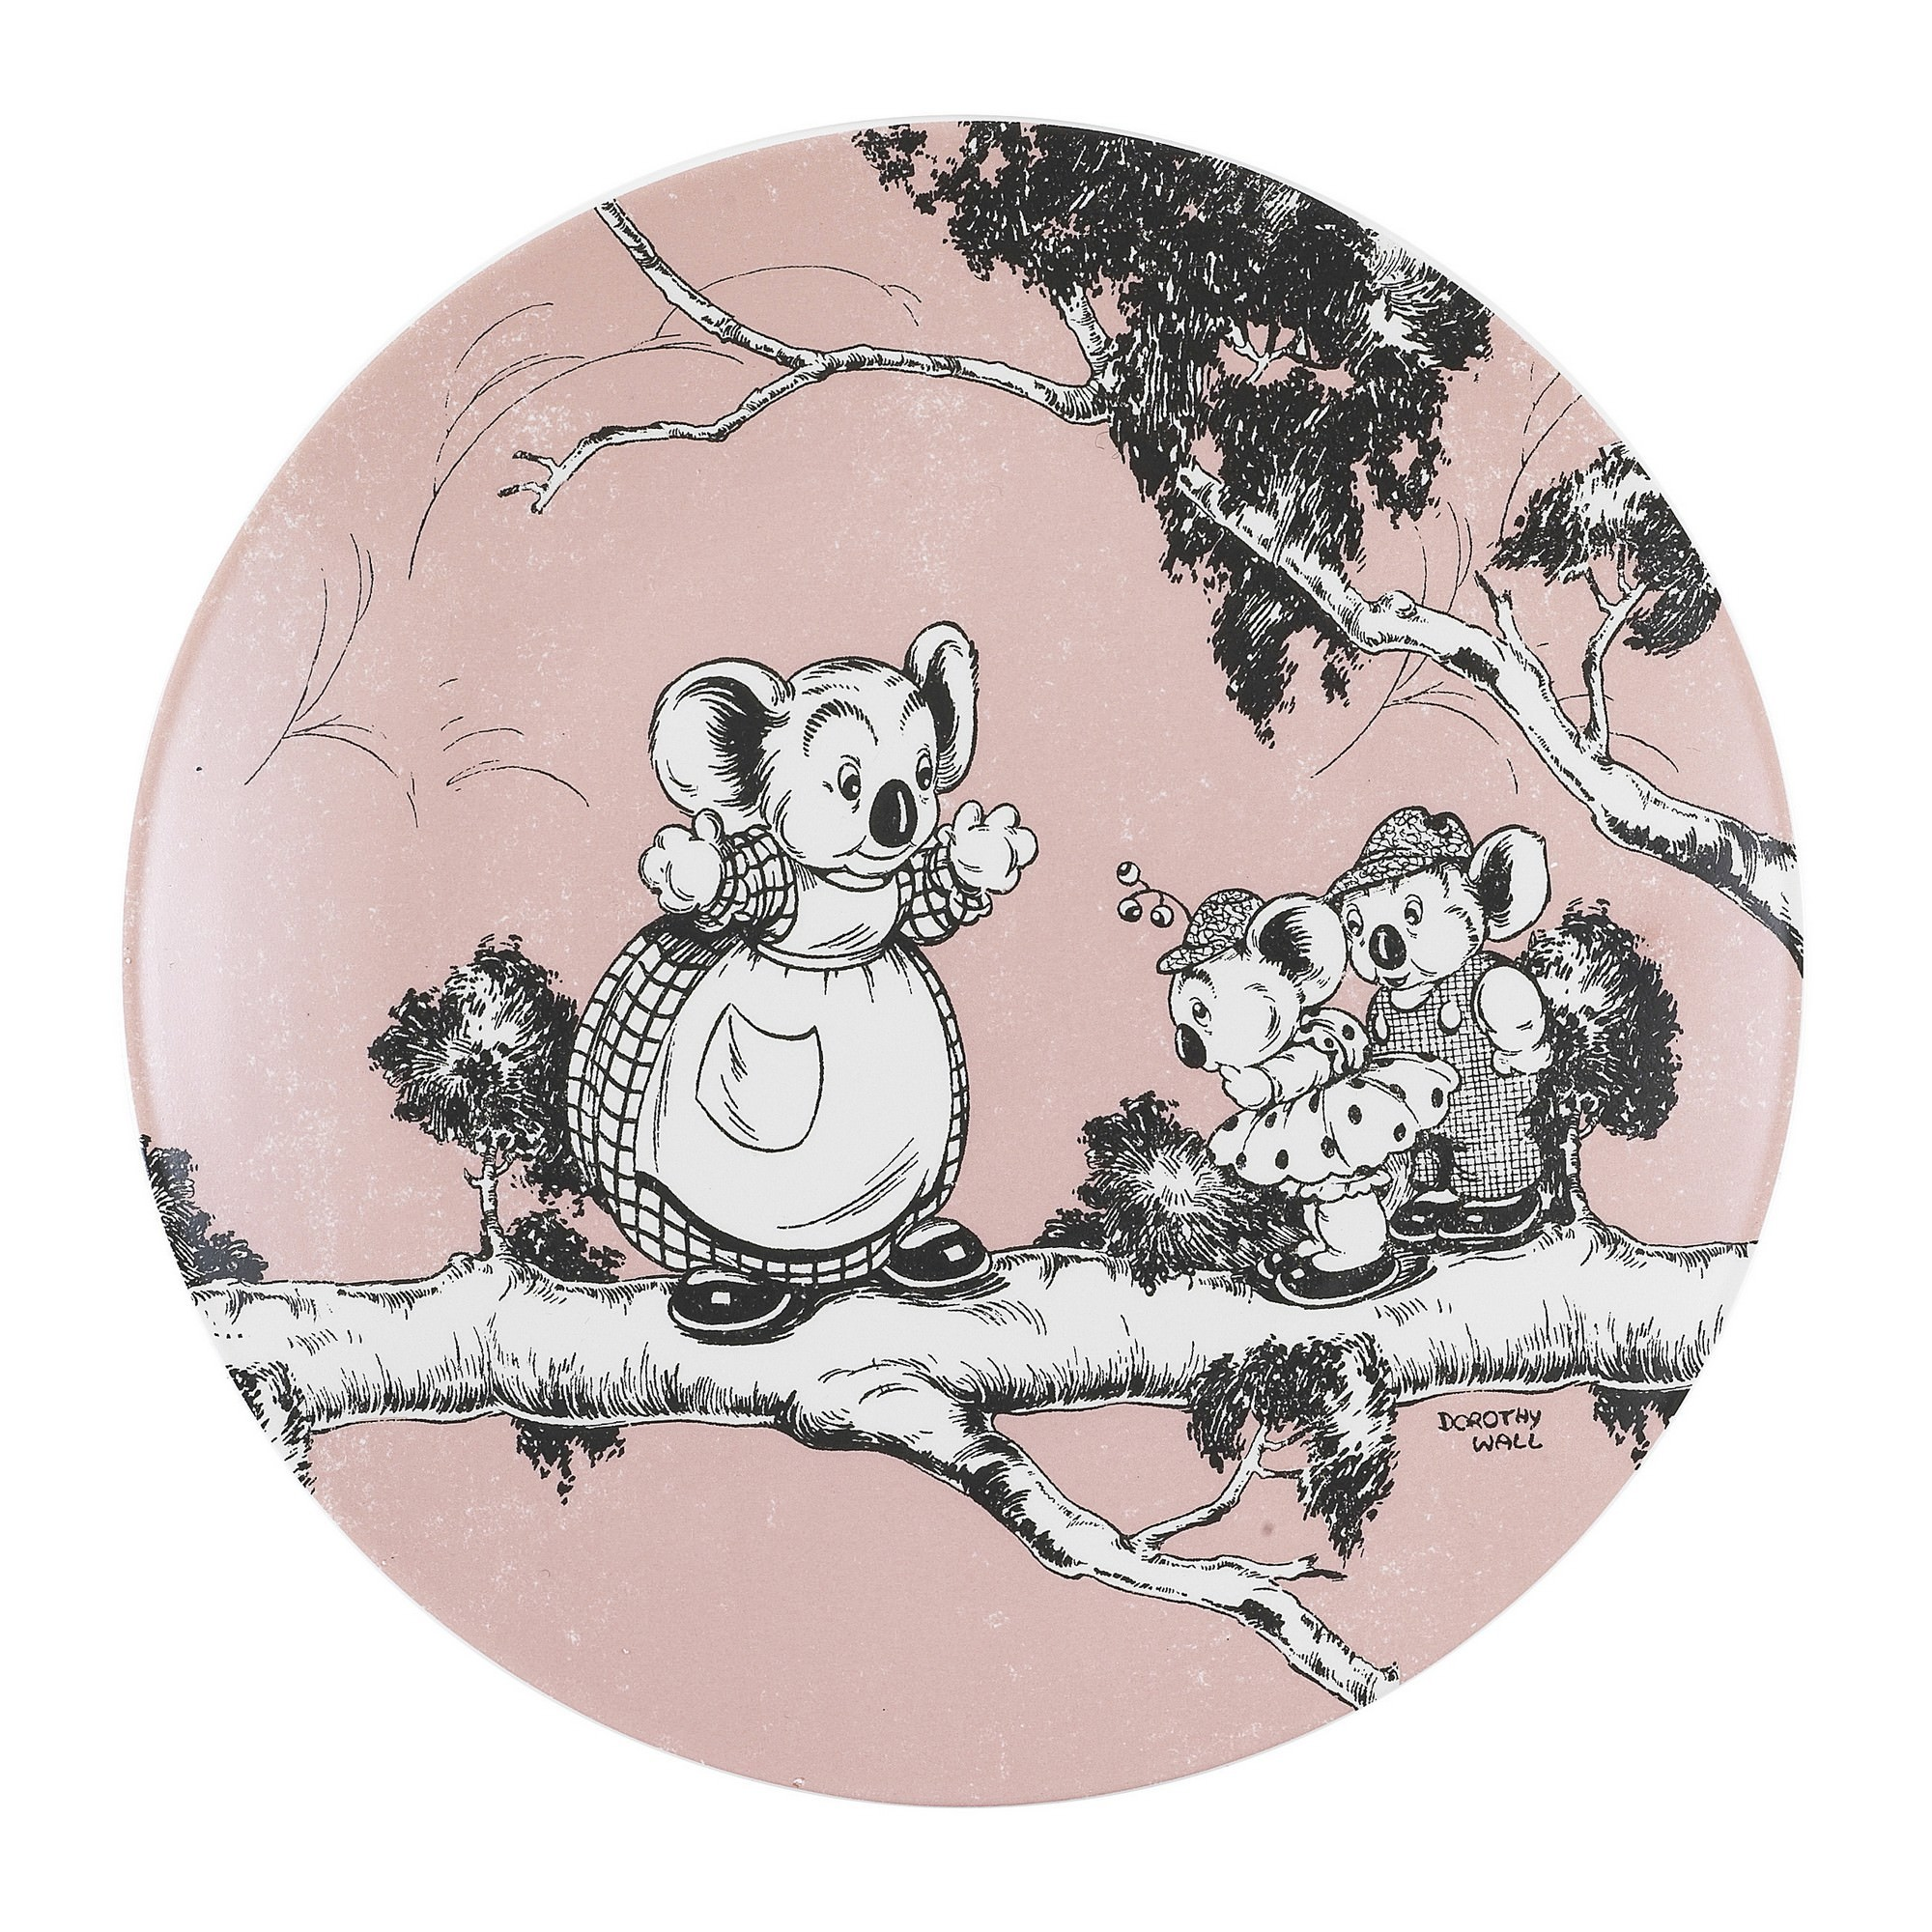 Ecology Blinky Bill New Bone China Side Plate, Coral